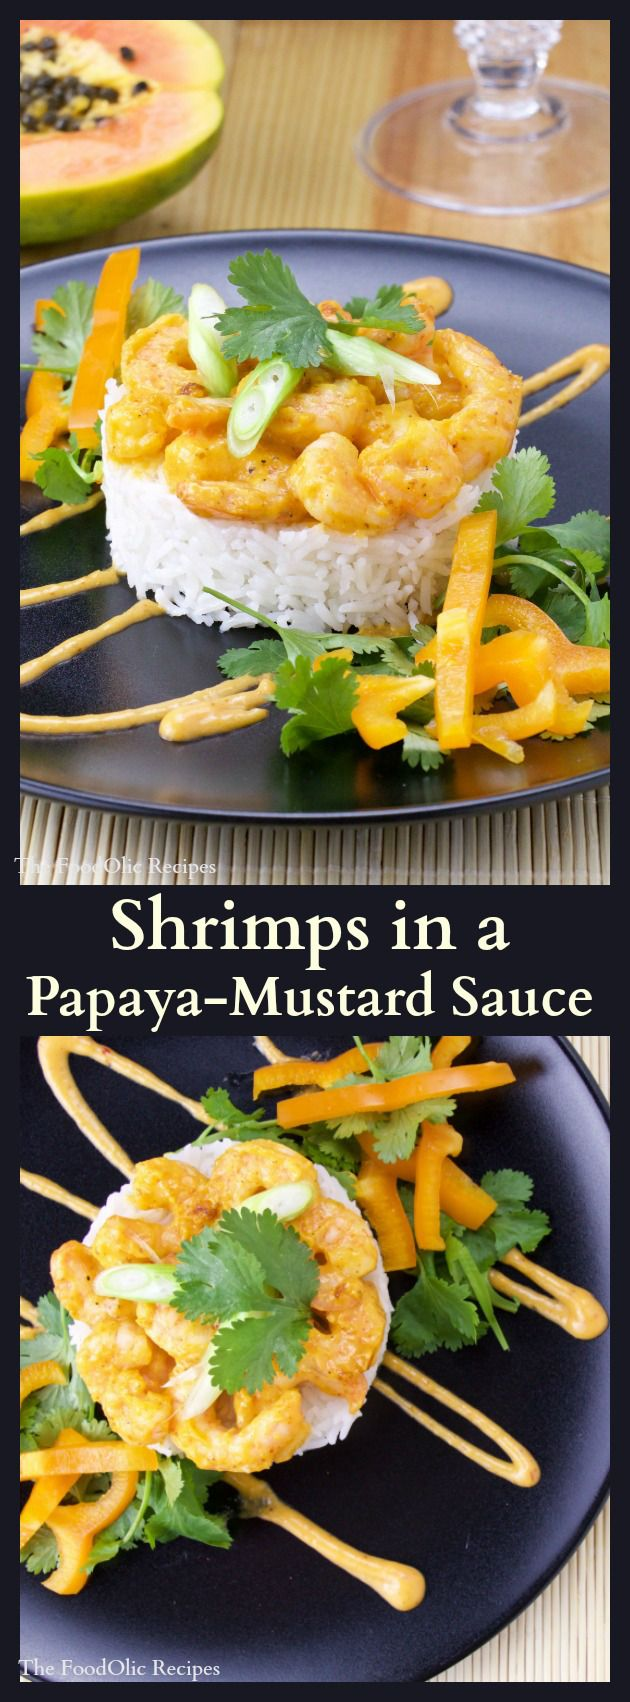 An unctuous orange sauce made out of papaya and white wine mustard covers the shrimps. Accompanied by a crunchy yellow bell pepper and cilantro leaves of asian/tropical influences. #seafood #mustard #papaya